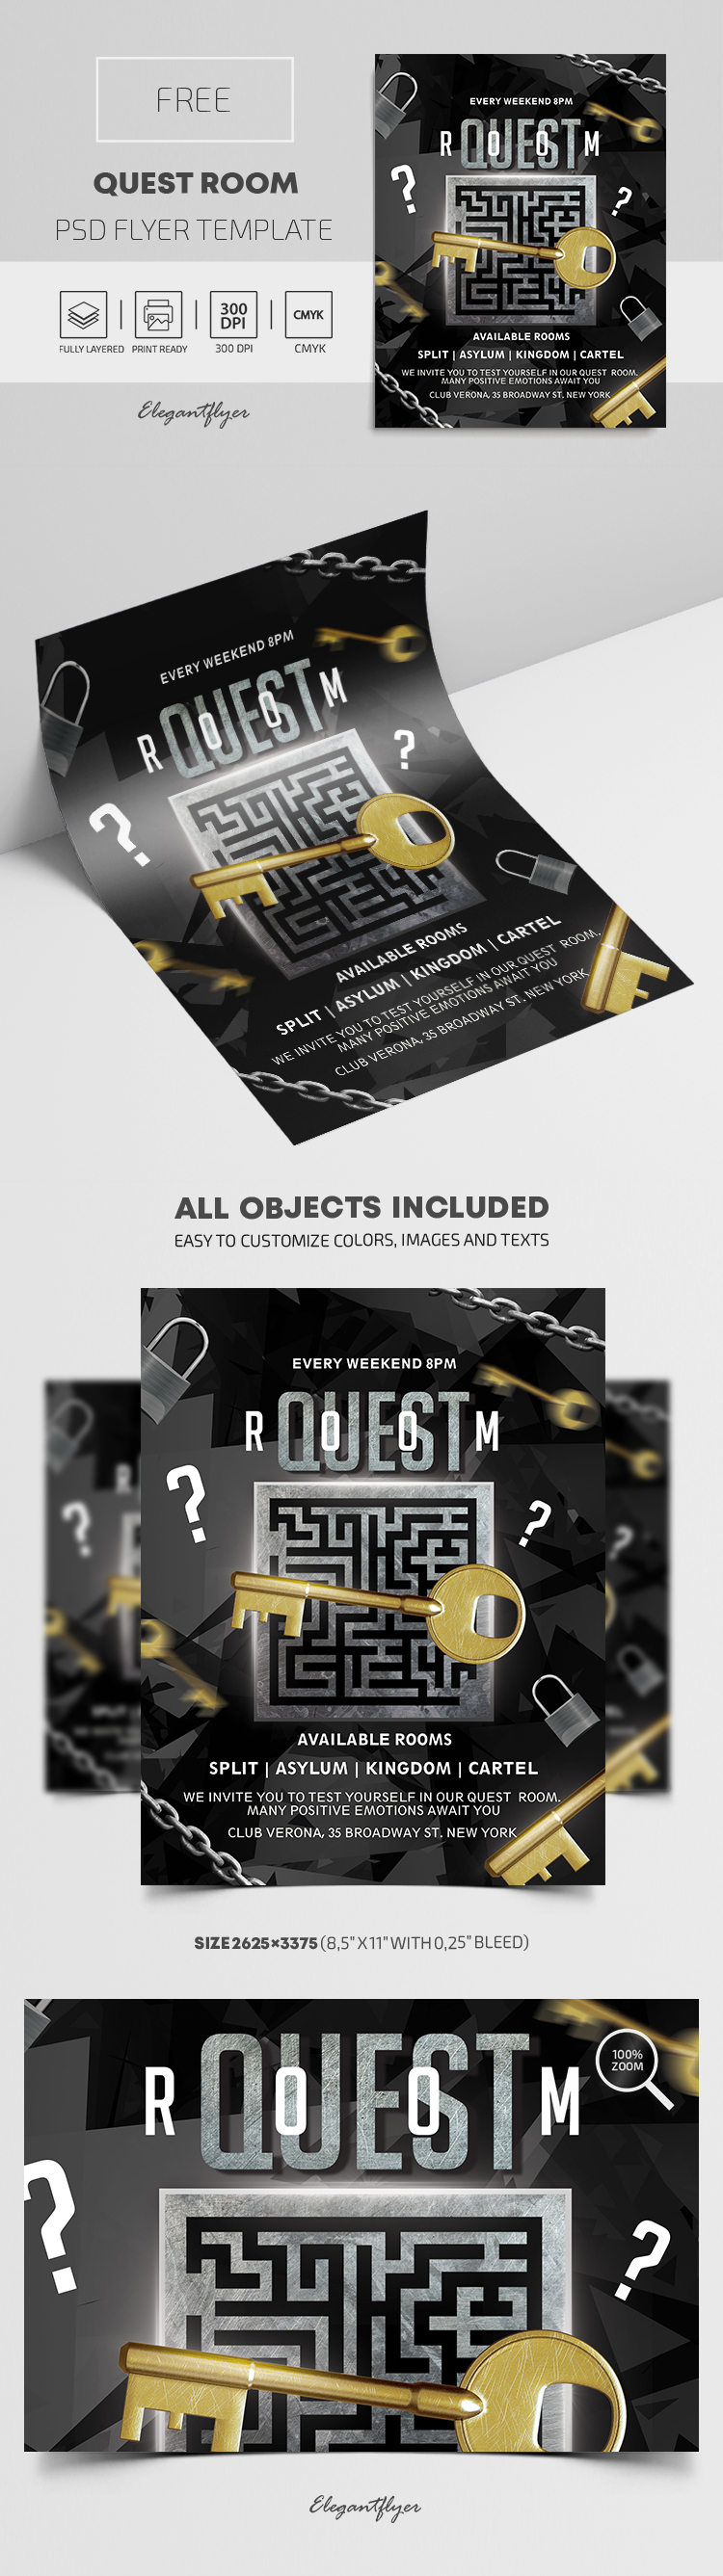 Quest Room – Free PSD Flyer Template